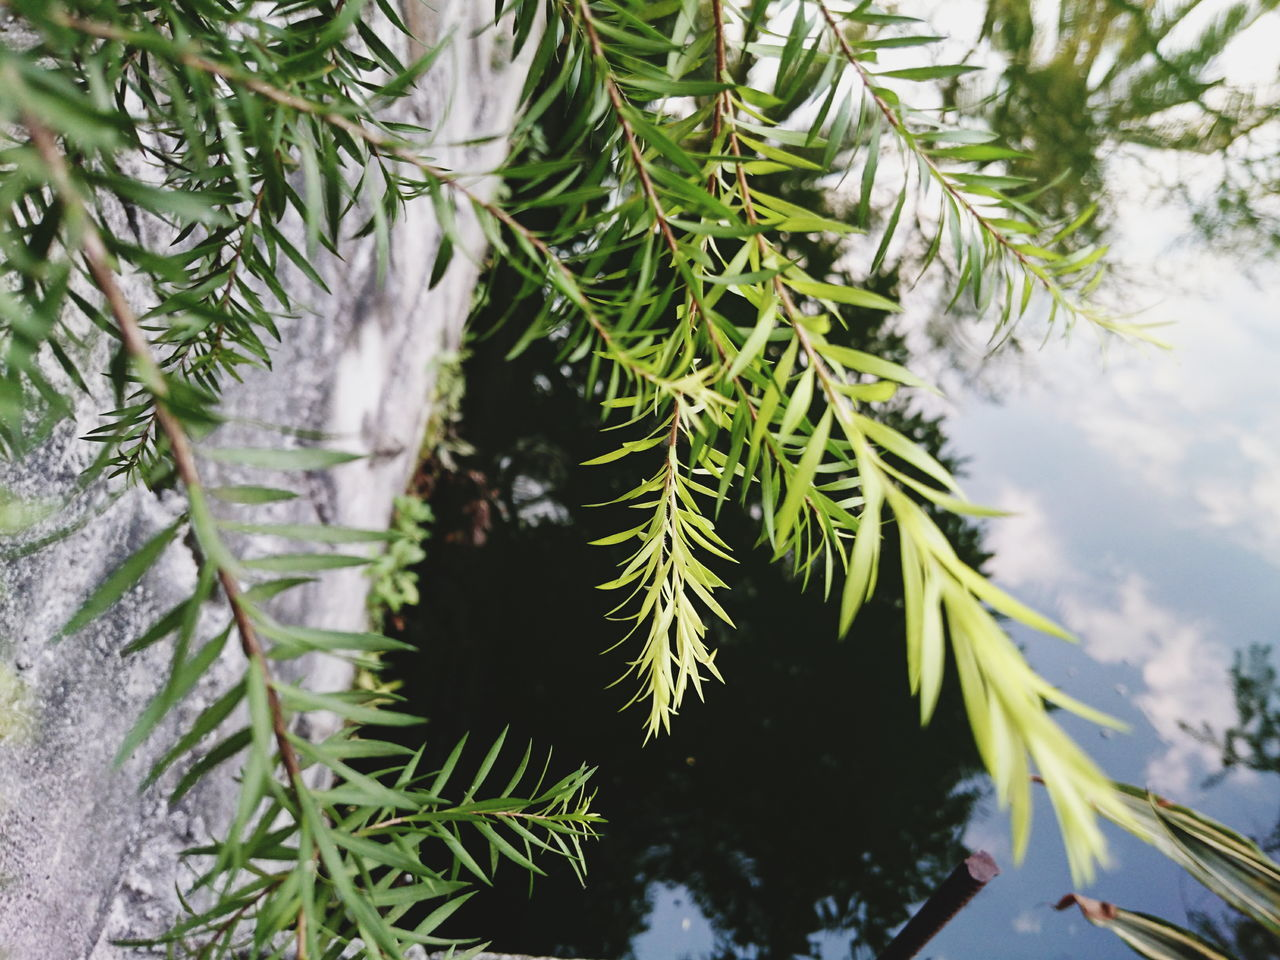 growth, nature, green color, plant, no people, tree, focus on foreground, winter, close-up, snow, cold temperature, day, outdoors, needle - plant part, pine tree, christmas tree, high angle view, beauty in nature, leaf, fir tree, spruce tree, branch, needle, freshness